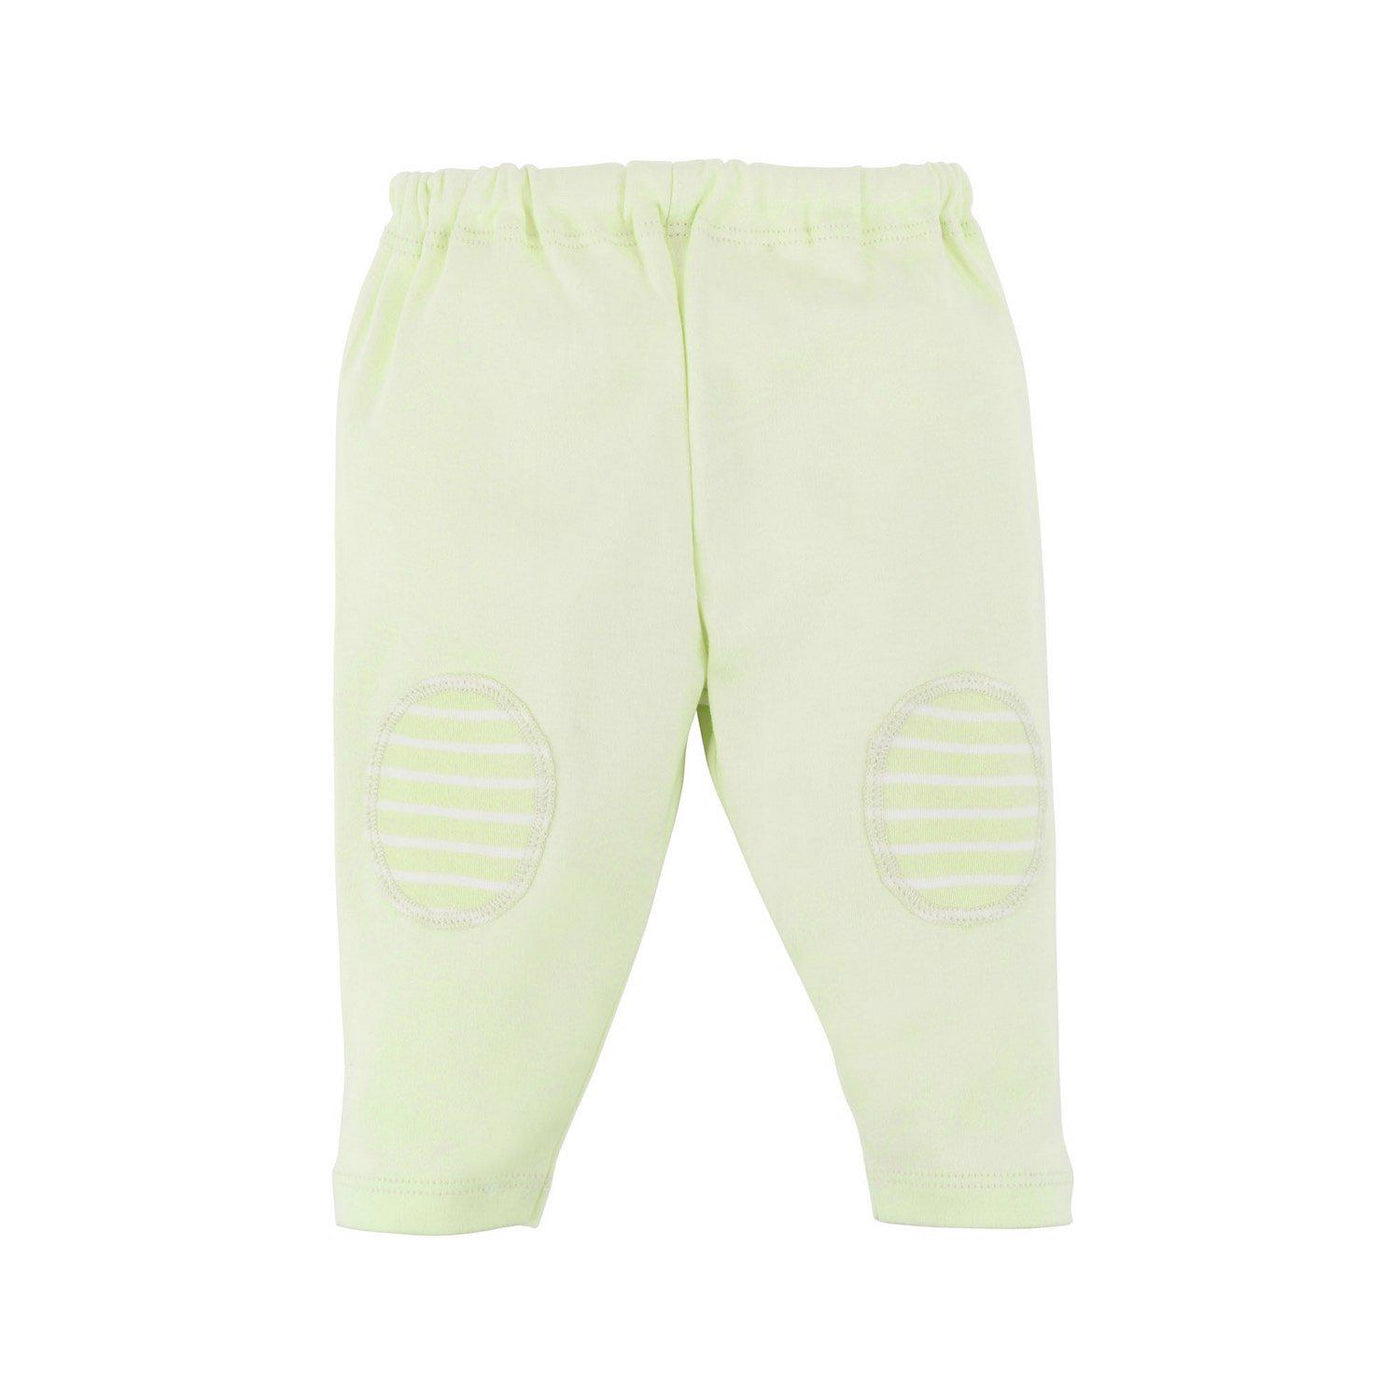 6-9M Under the Nile Baby Pull on Pant with Oval Knee Patches